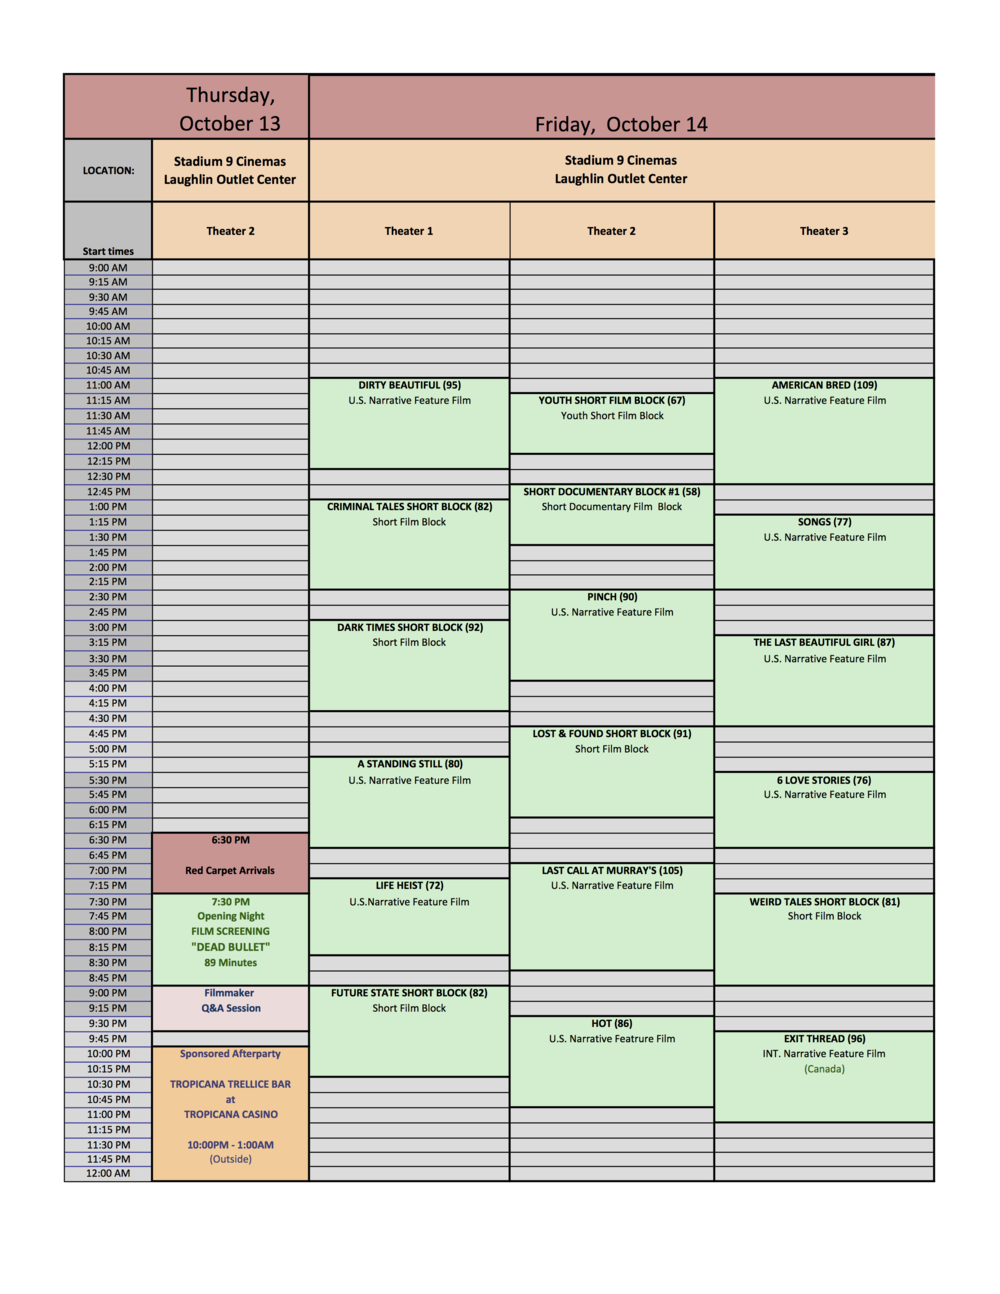 ALL FILMS - ALL DAYS - GRIDS SCHEDULE FORMAT